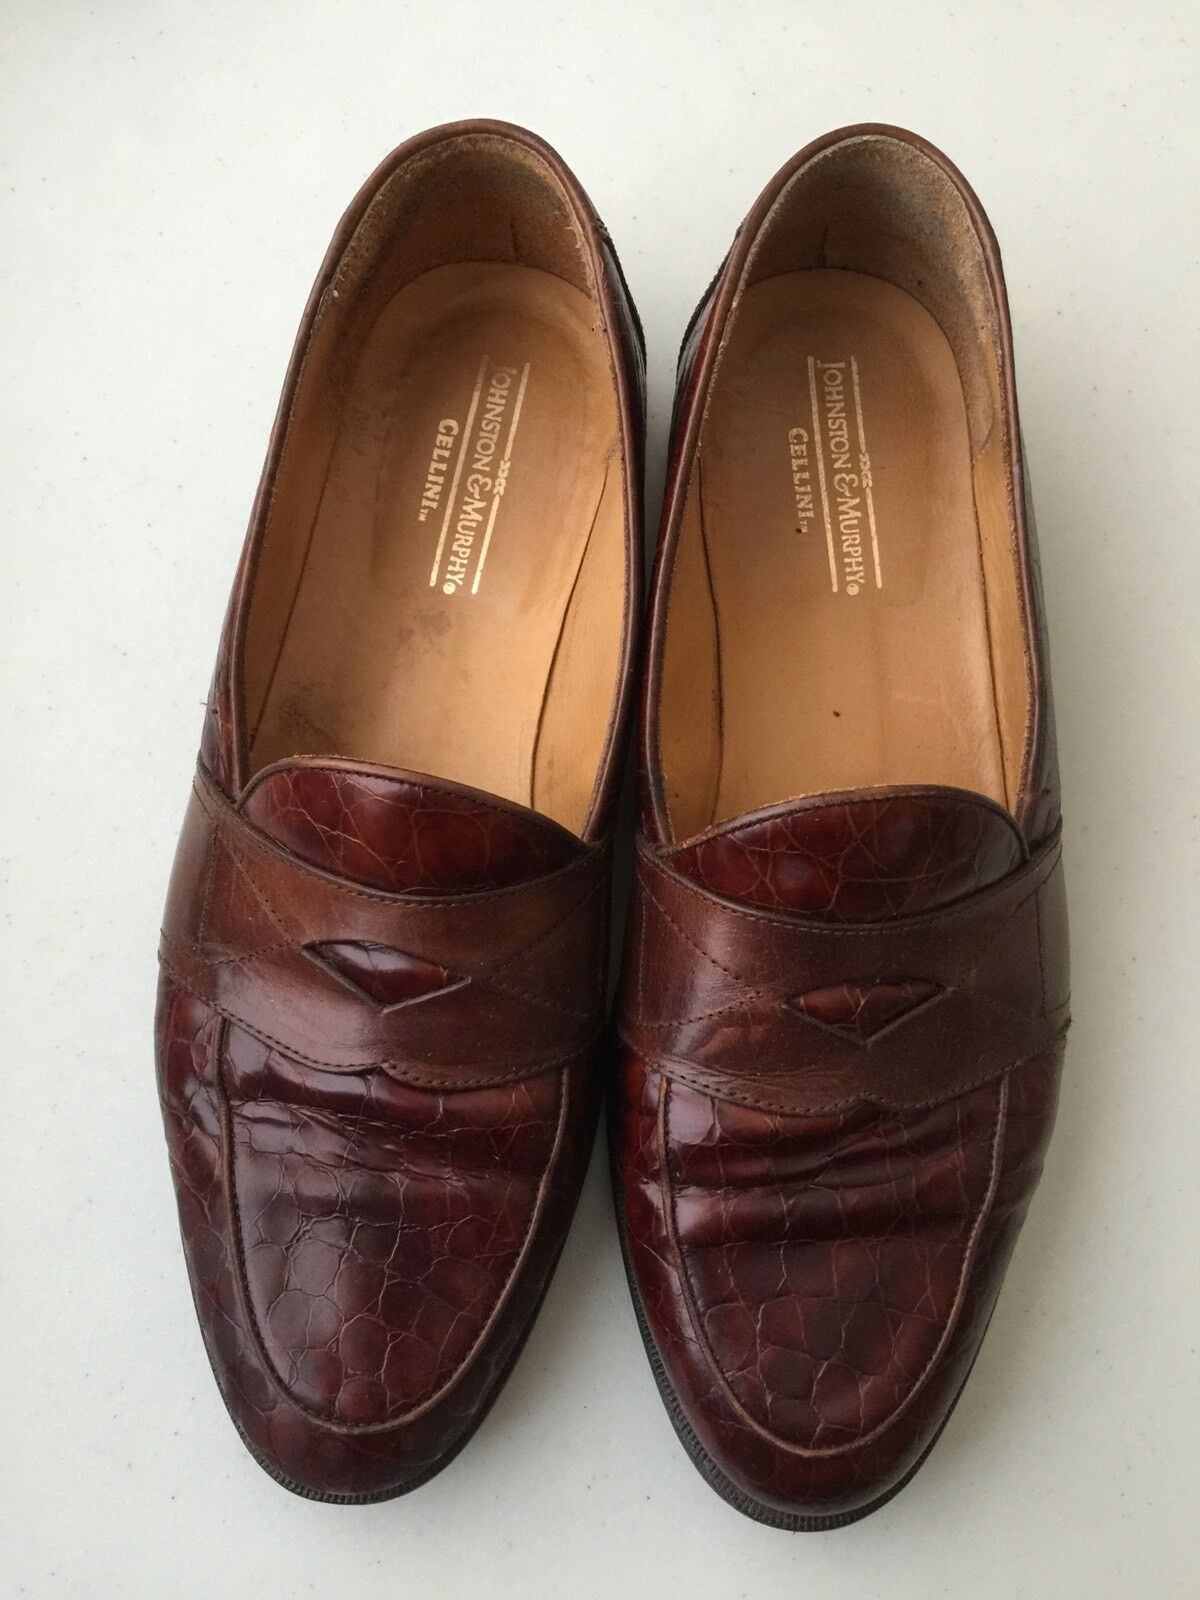 al prezzo più basso Johnston and Murphy Cellini Slip ons ons ons Croc print 10 M Marrone penny Loafers italy  n ° 1 online